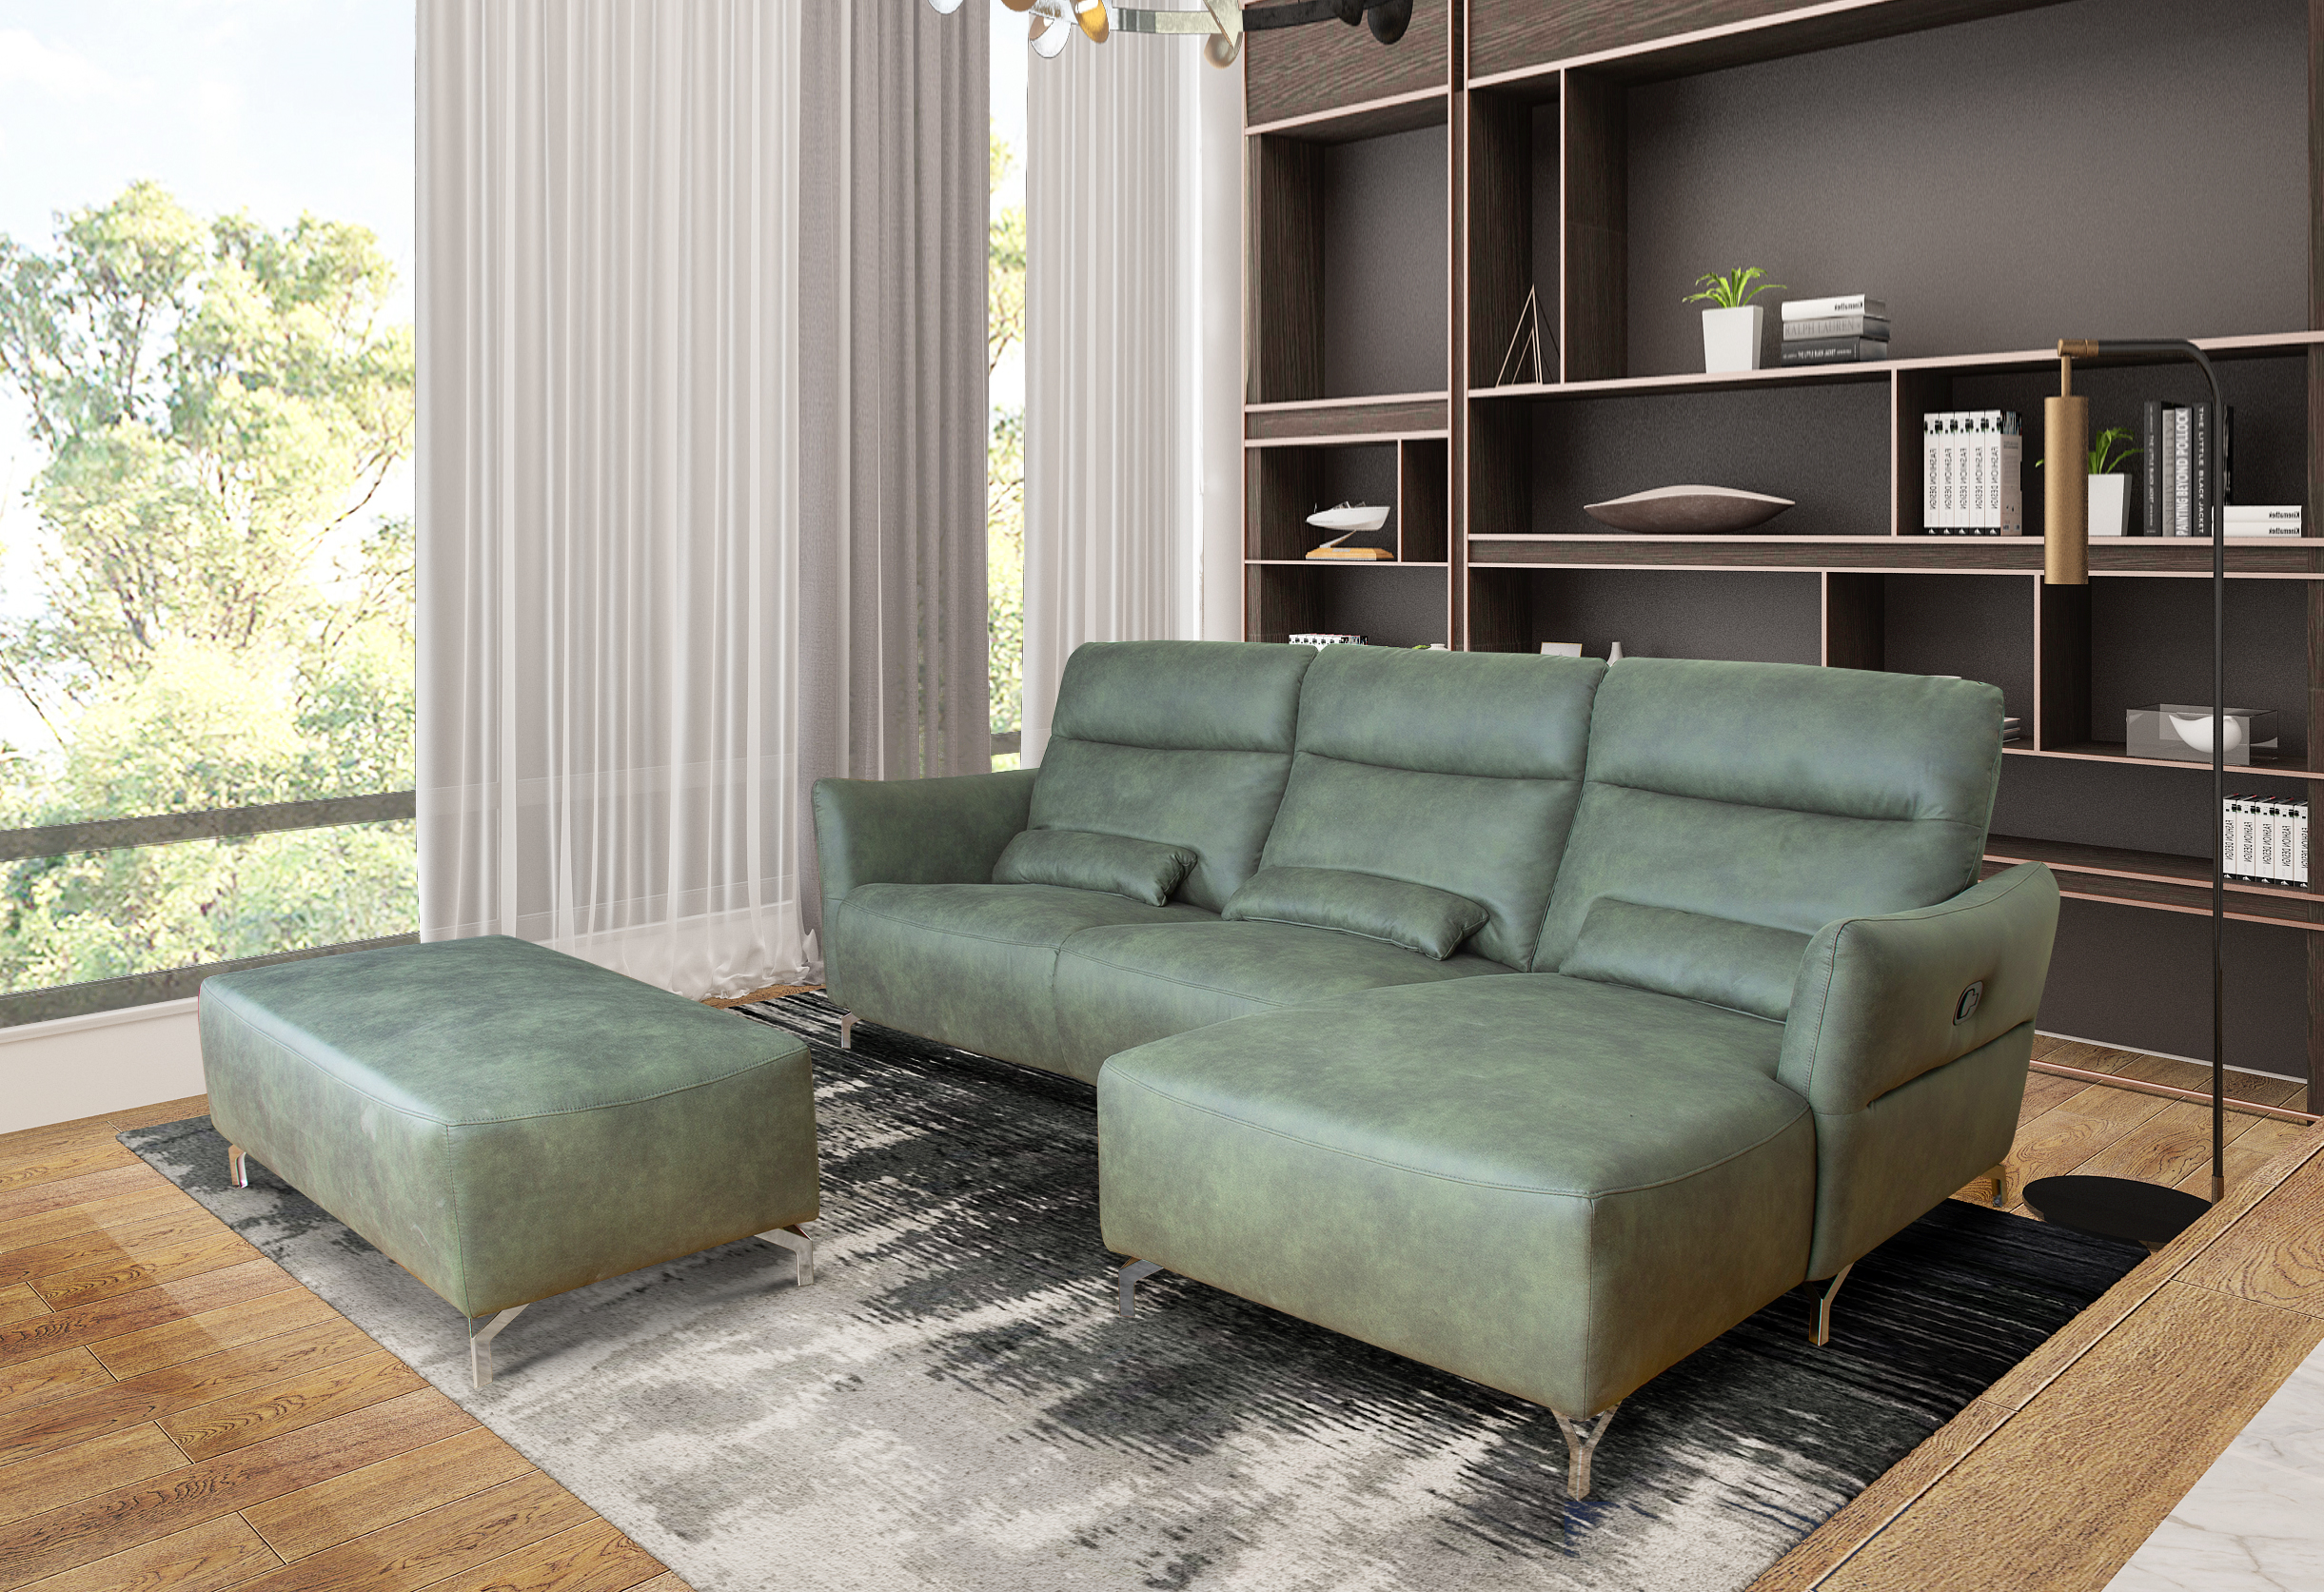 Which is better, fabric sofa or leather sofa?